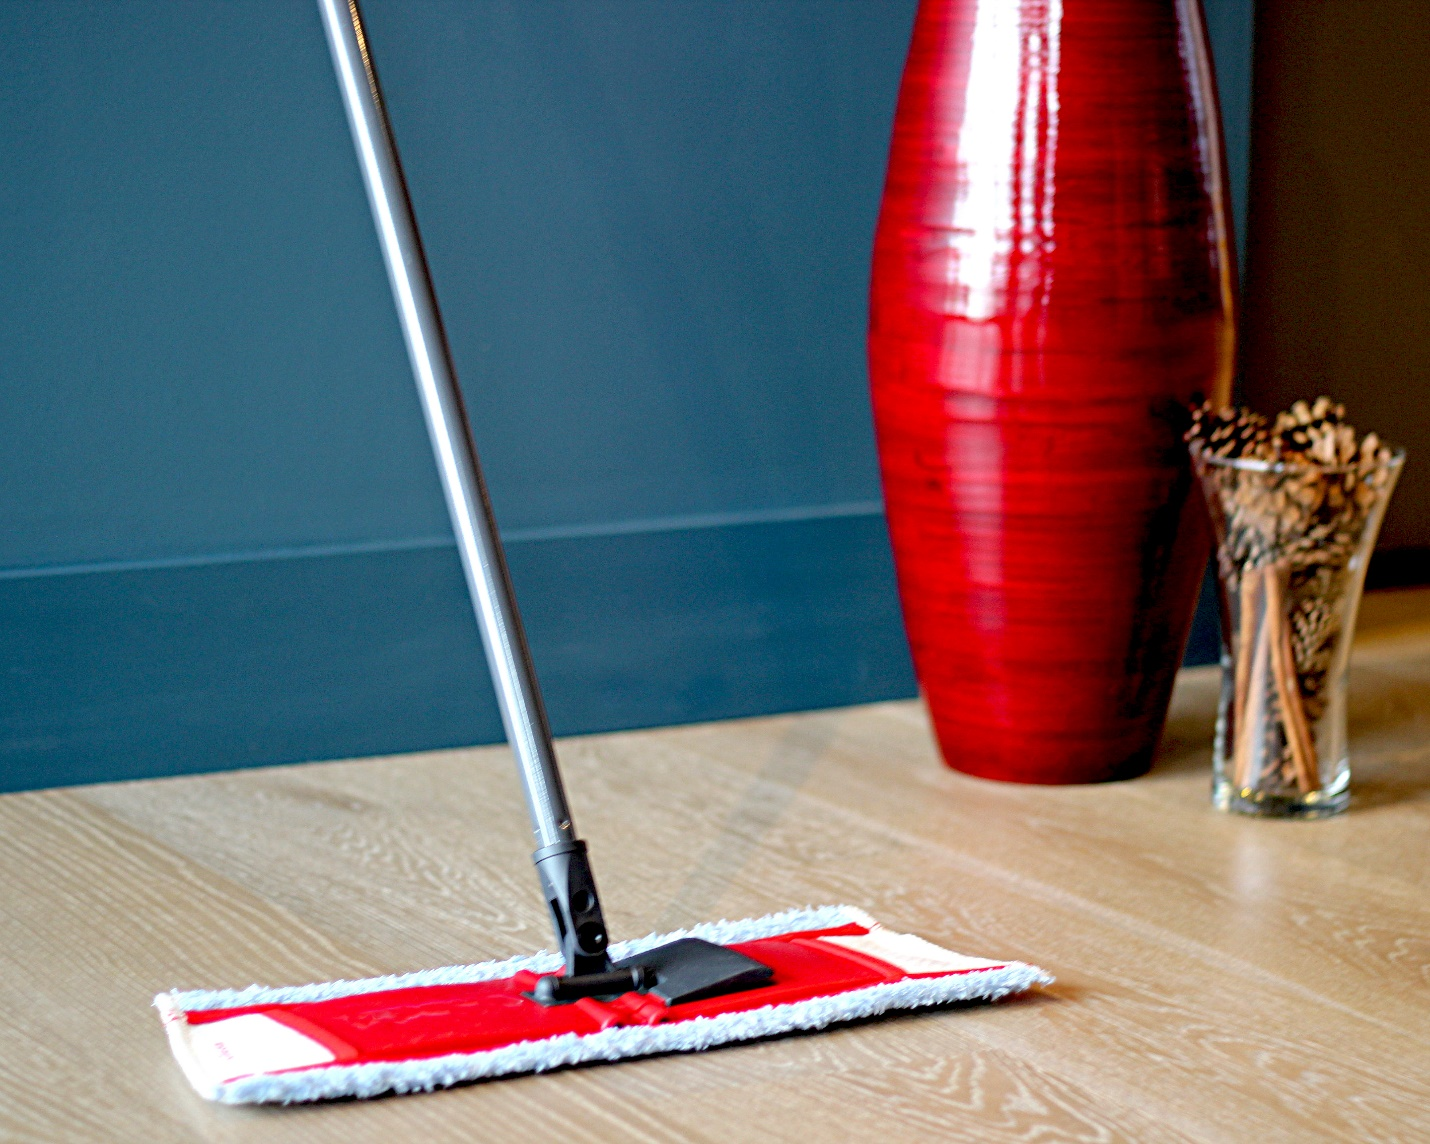 Clean your engineered hardwood flooring regularly